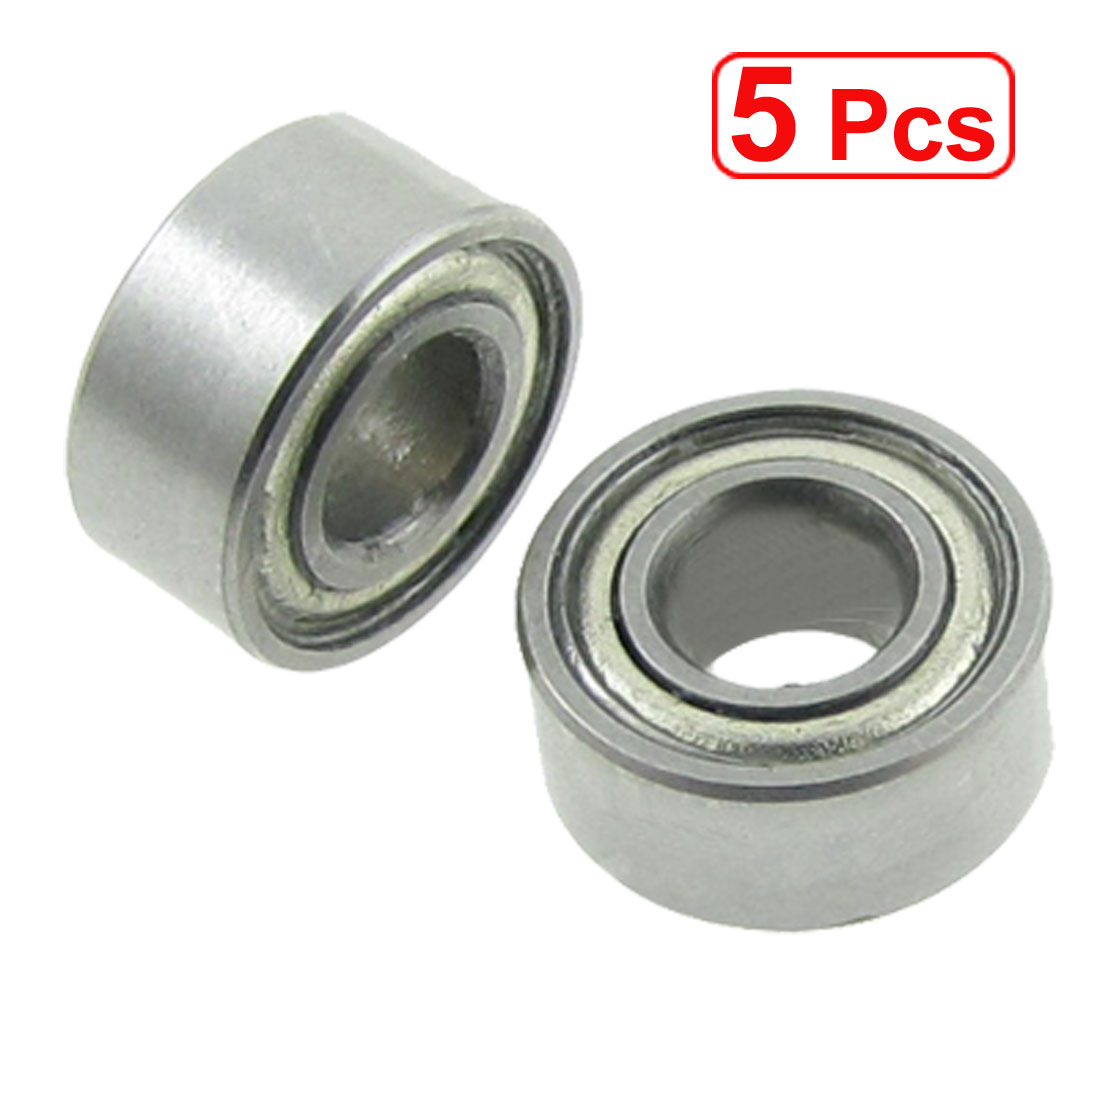 5 Pcs Double Sealed 3 x 7 x 3mm Deep Groove Ball Bearings